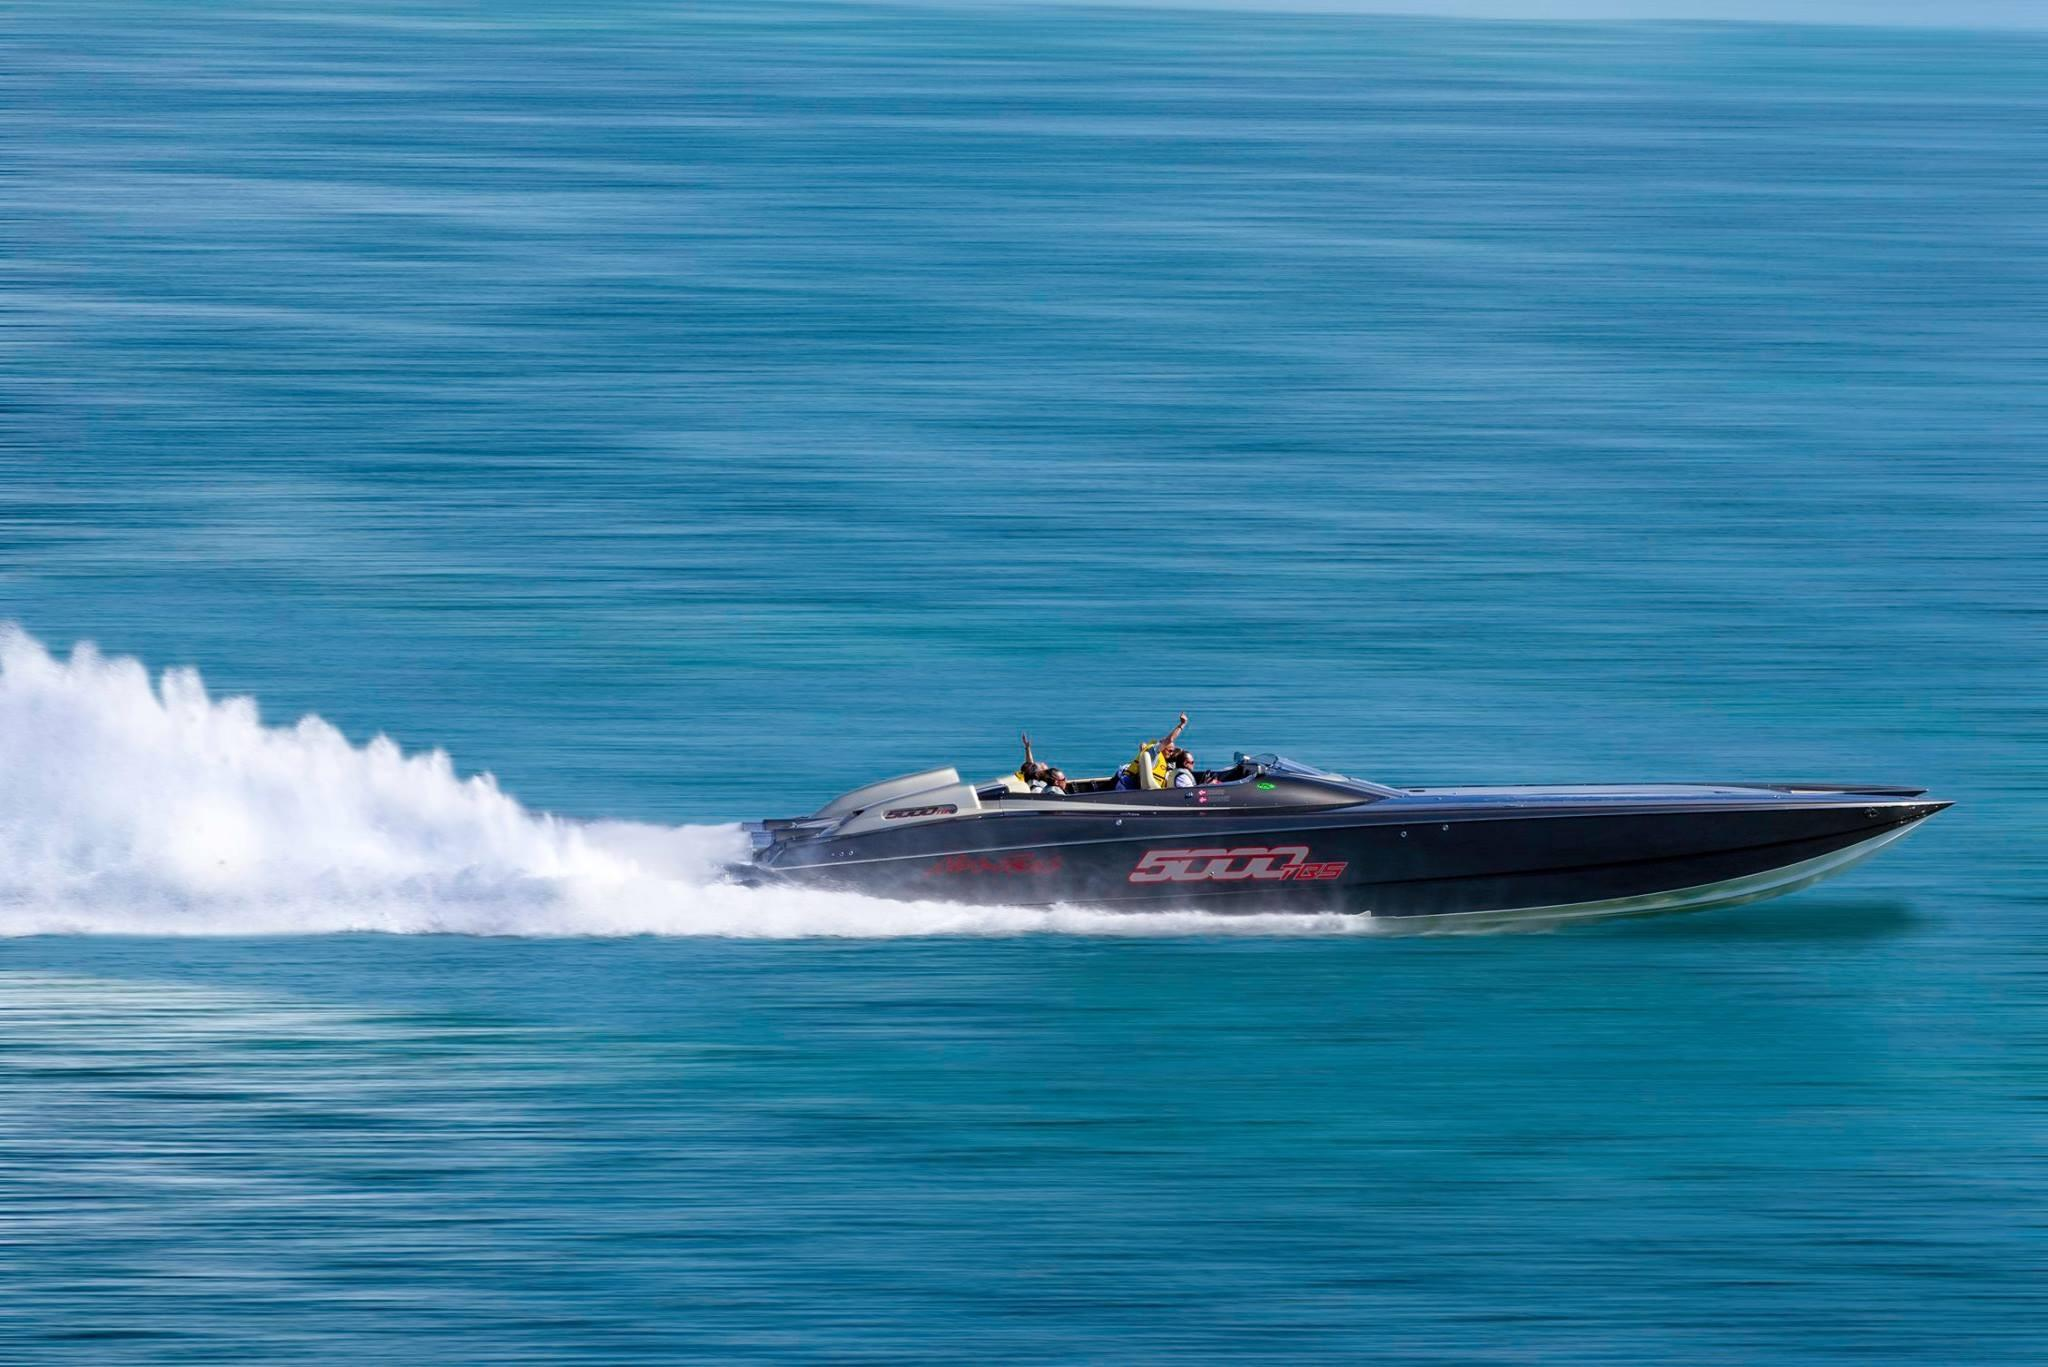 Boats For Sale - Suncoast Powerboat and Yacht Brokerage in